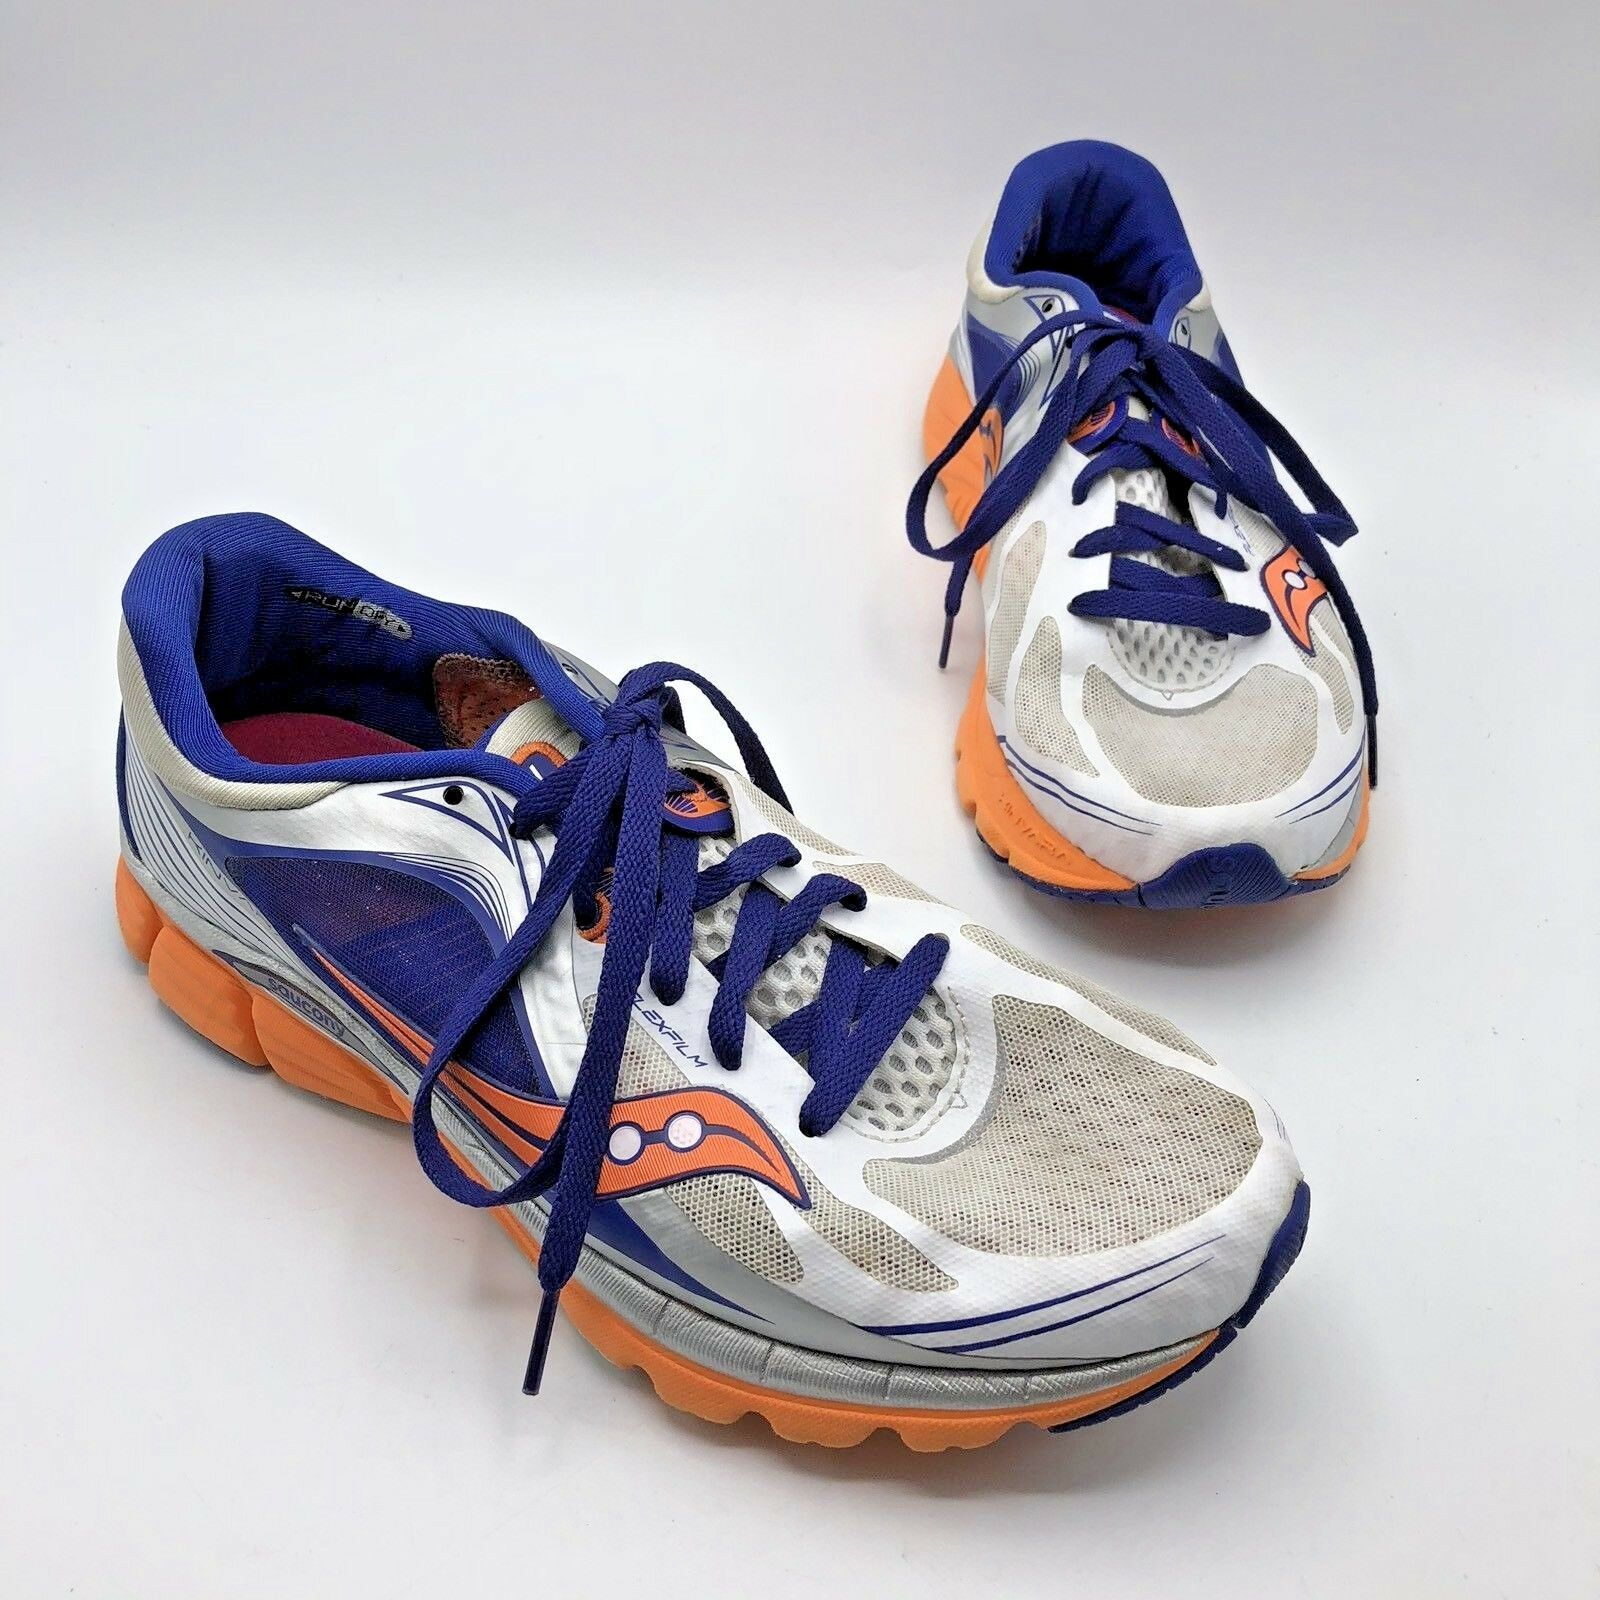 Saucony Kinvara 5 Women White bluee orange Running shoes Size 10 Pre Owned